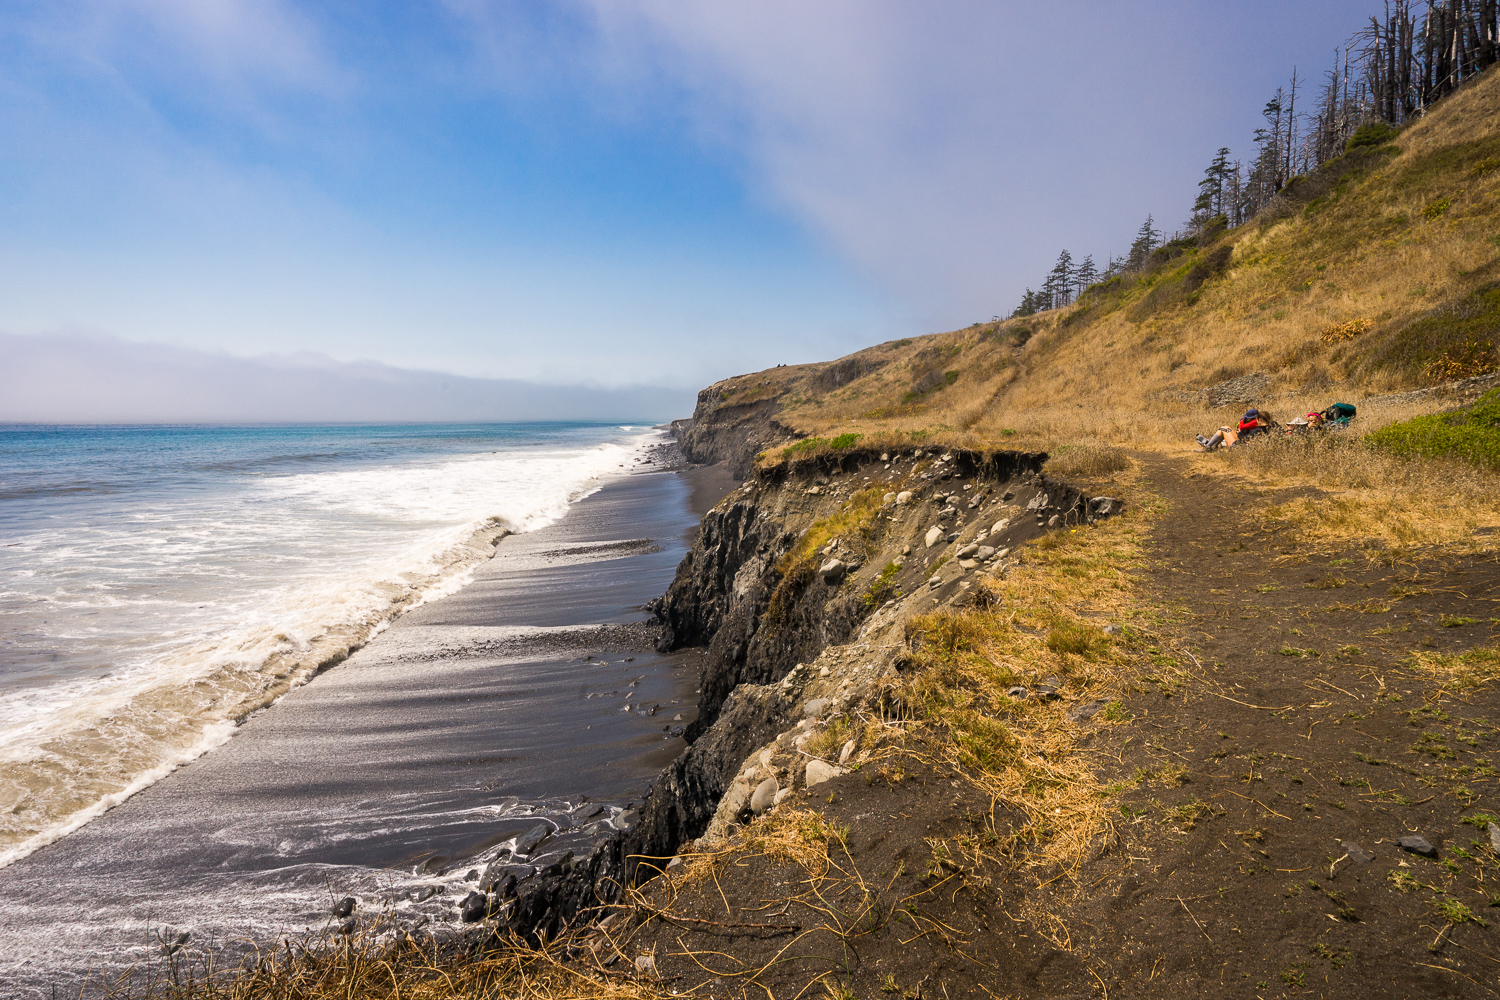 2016_August_20-Lost_Coast_Trail-26954.jpg